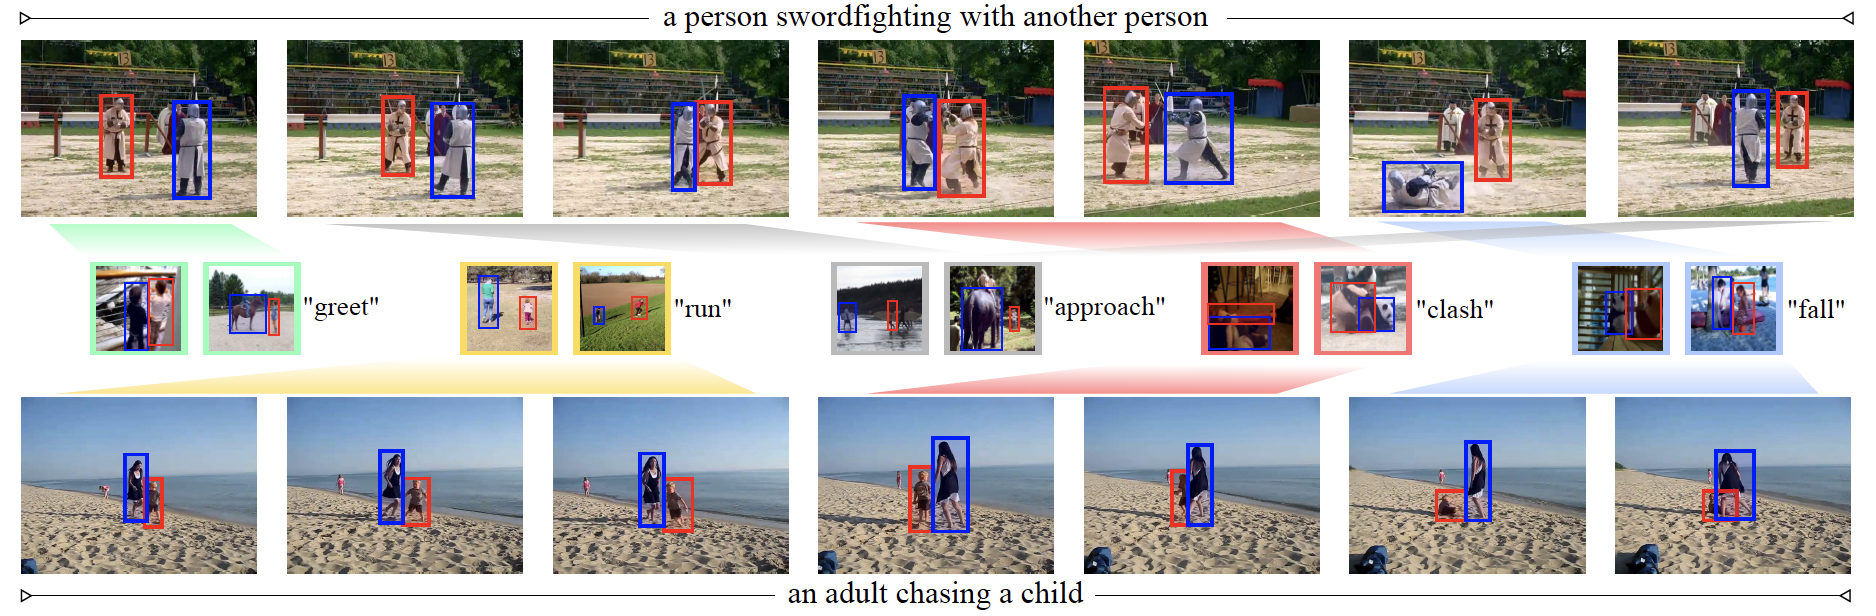 Social Fabric: Tubelet Compositions for Video Relation Detection